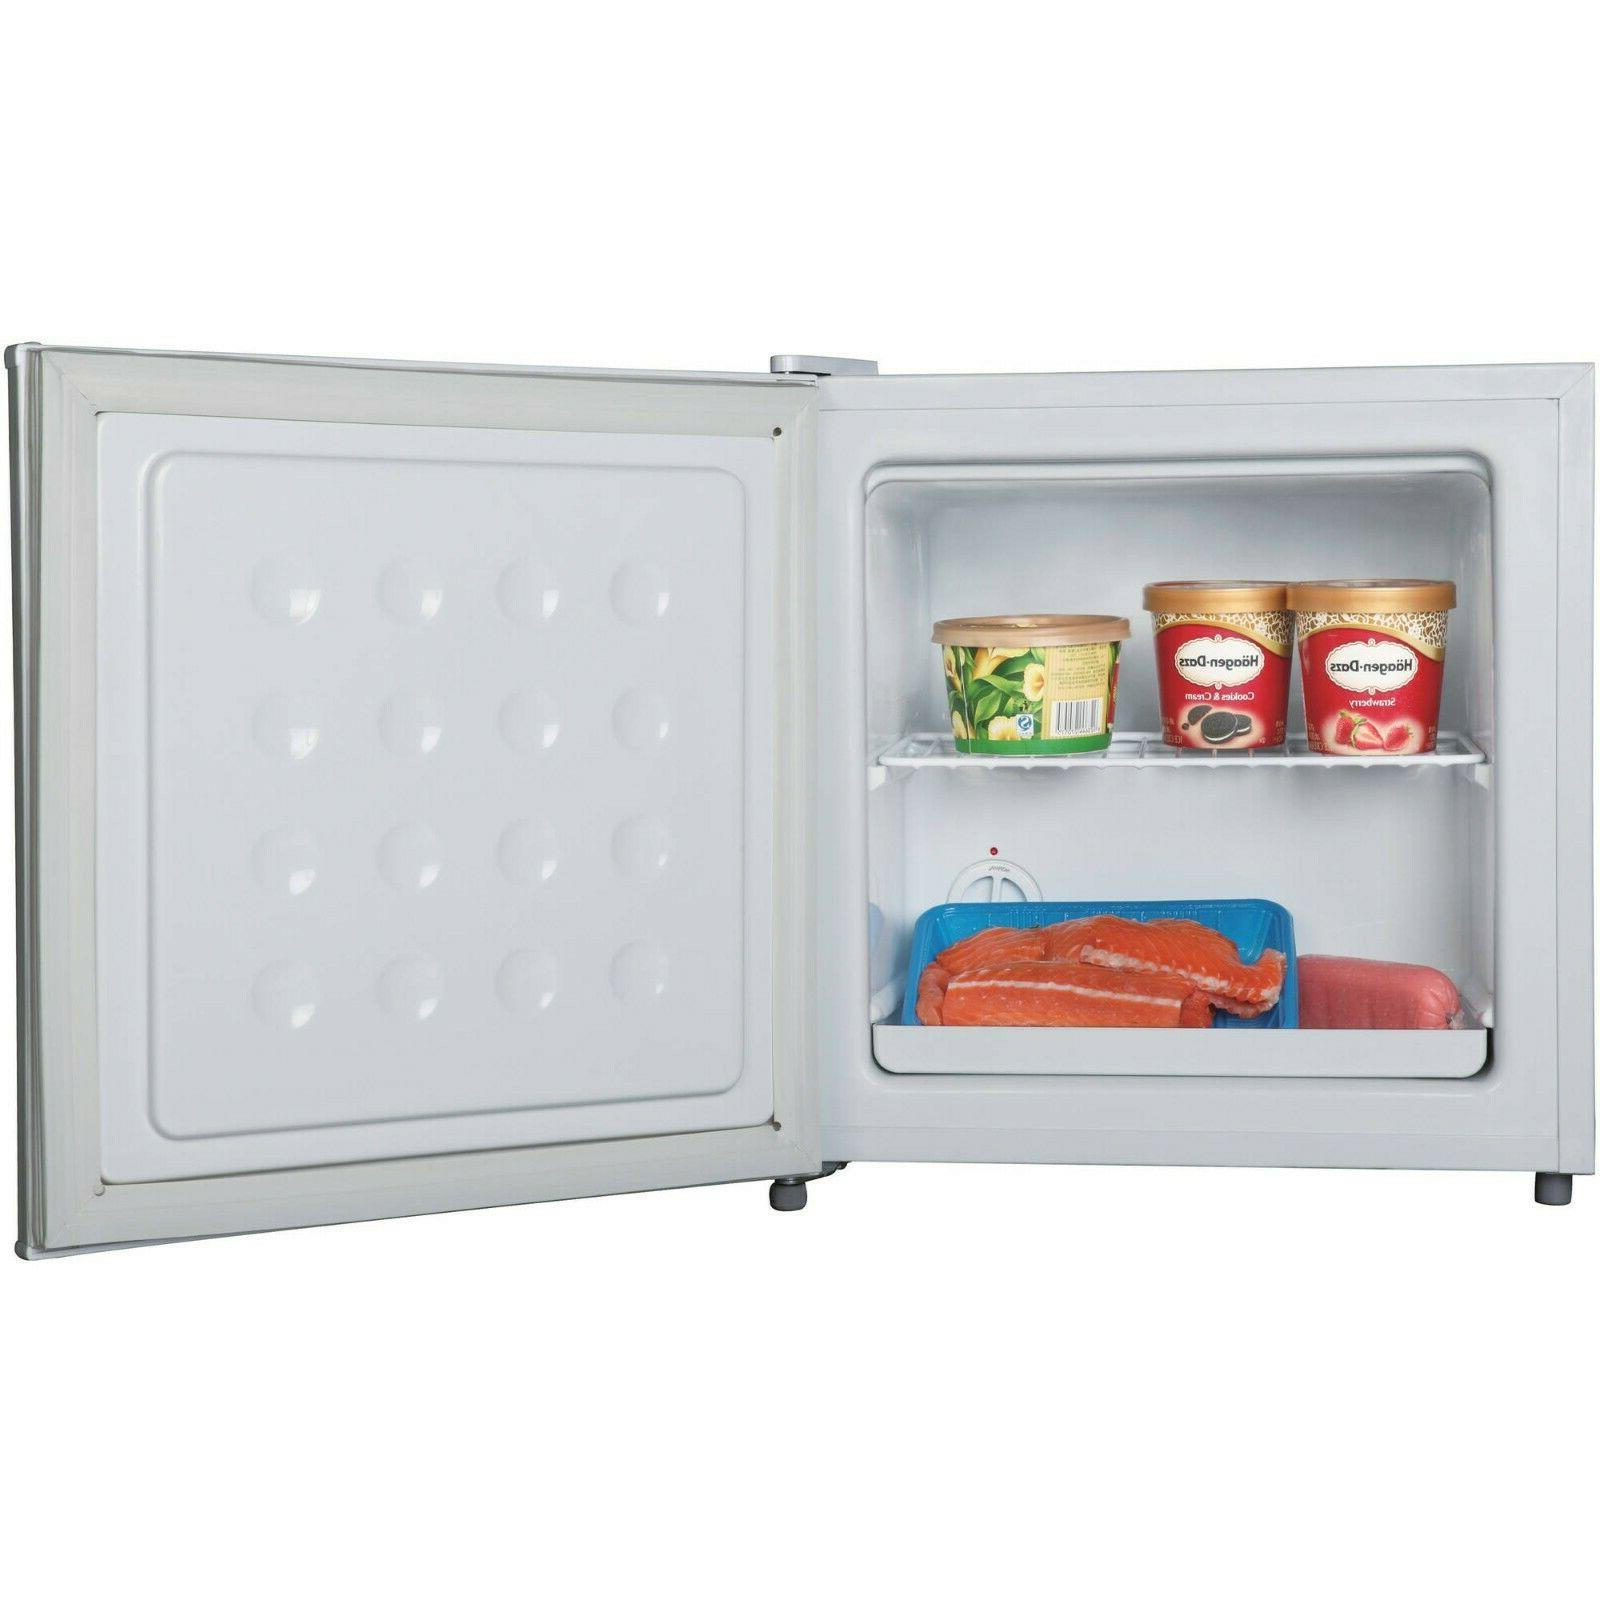 In-home ft Upright Freezer Door Compact White